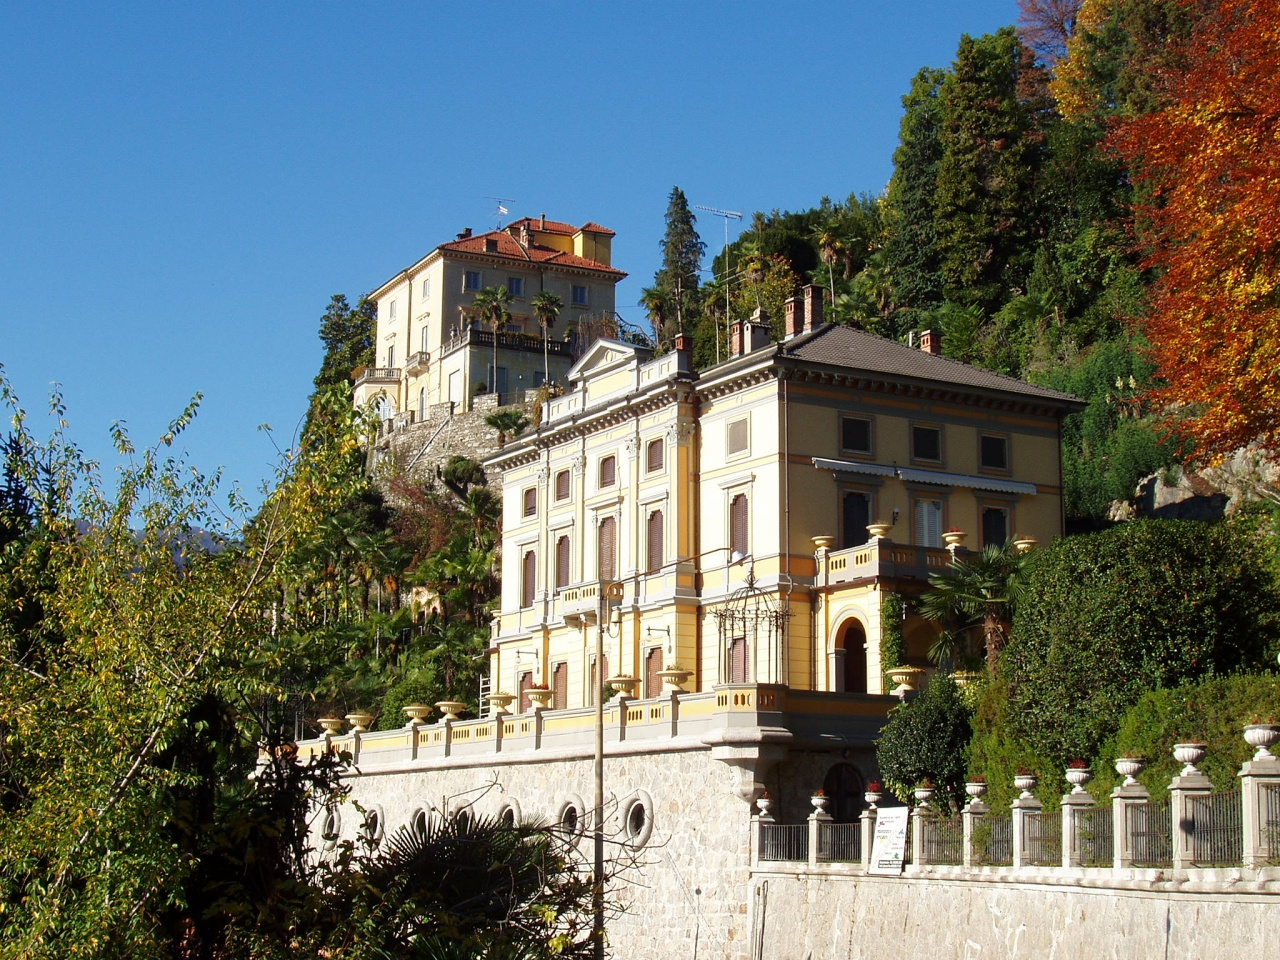 Orta hotel particulier